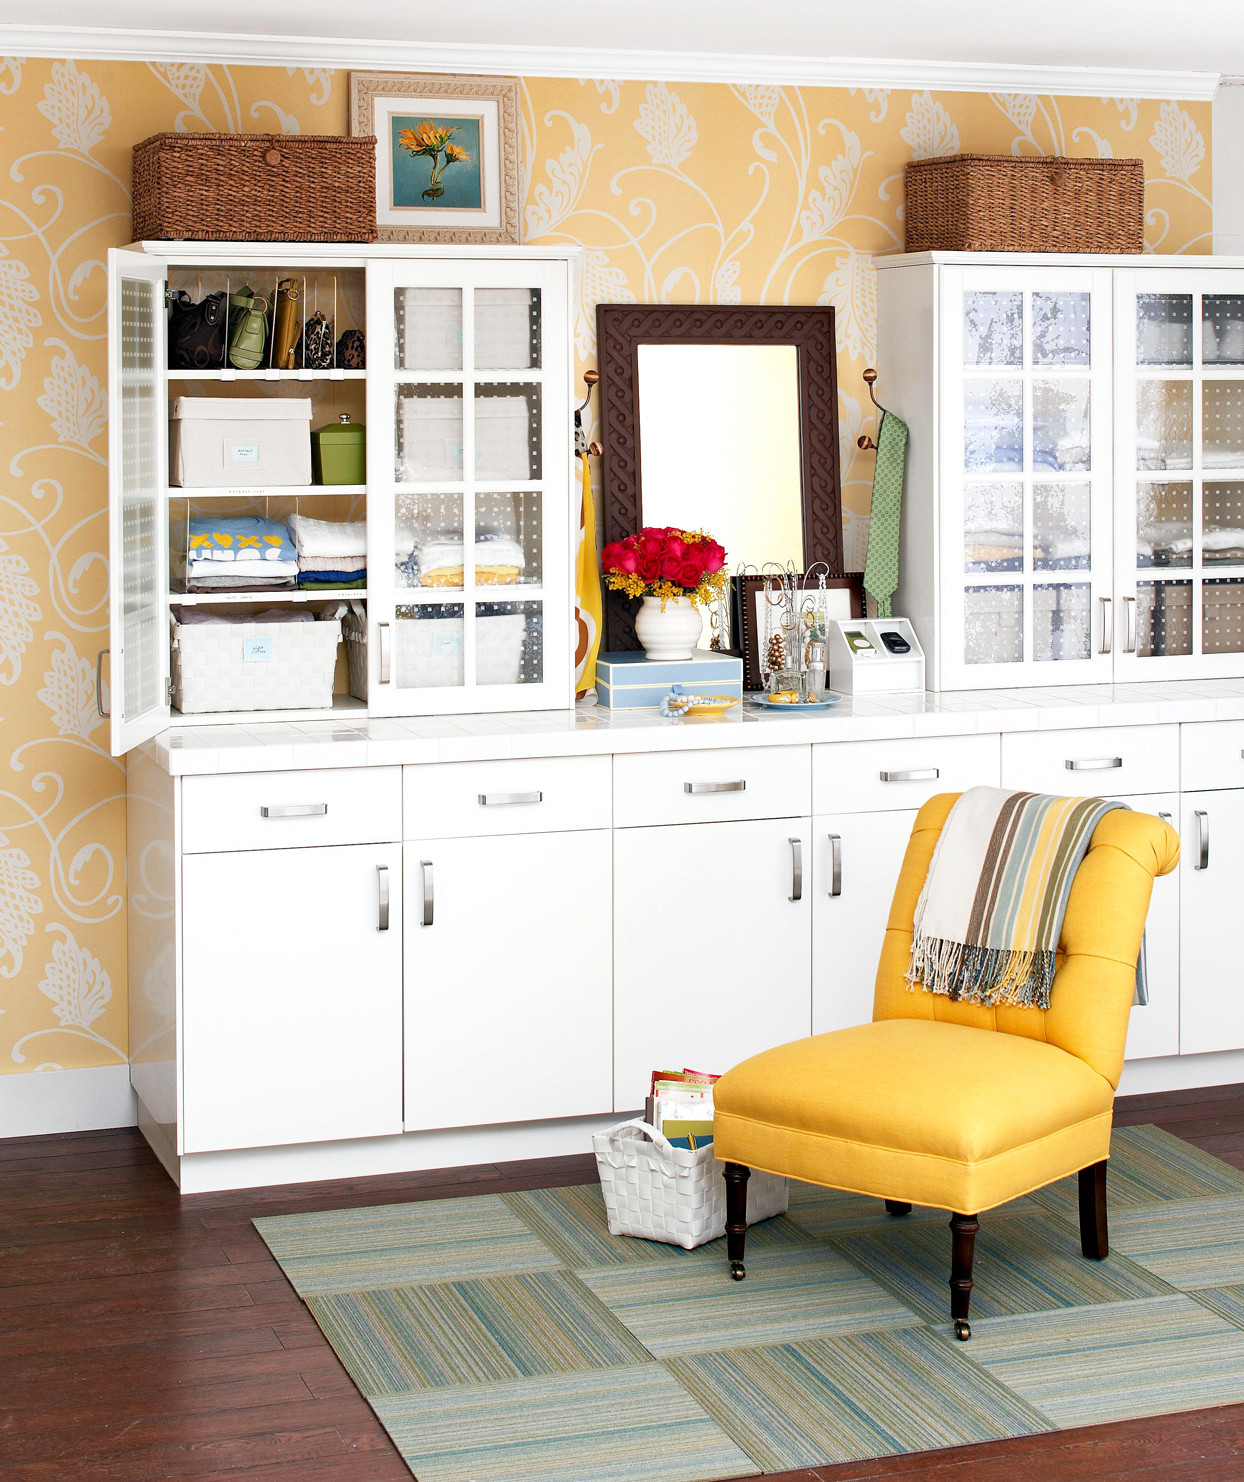 Kitchen Cabinetry-Style Dressing Area